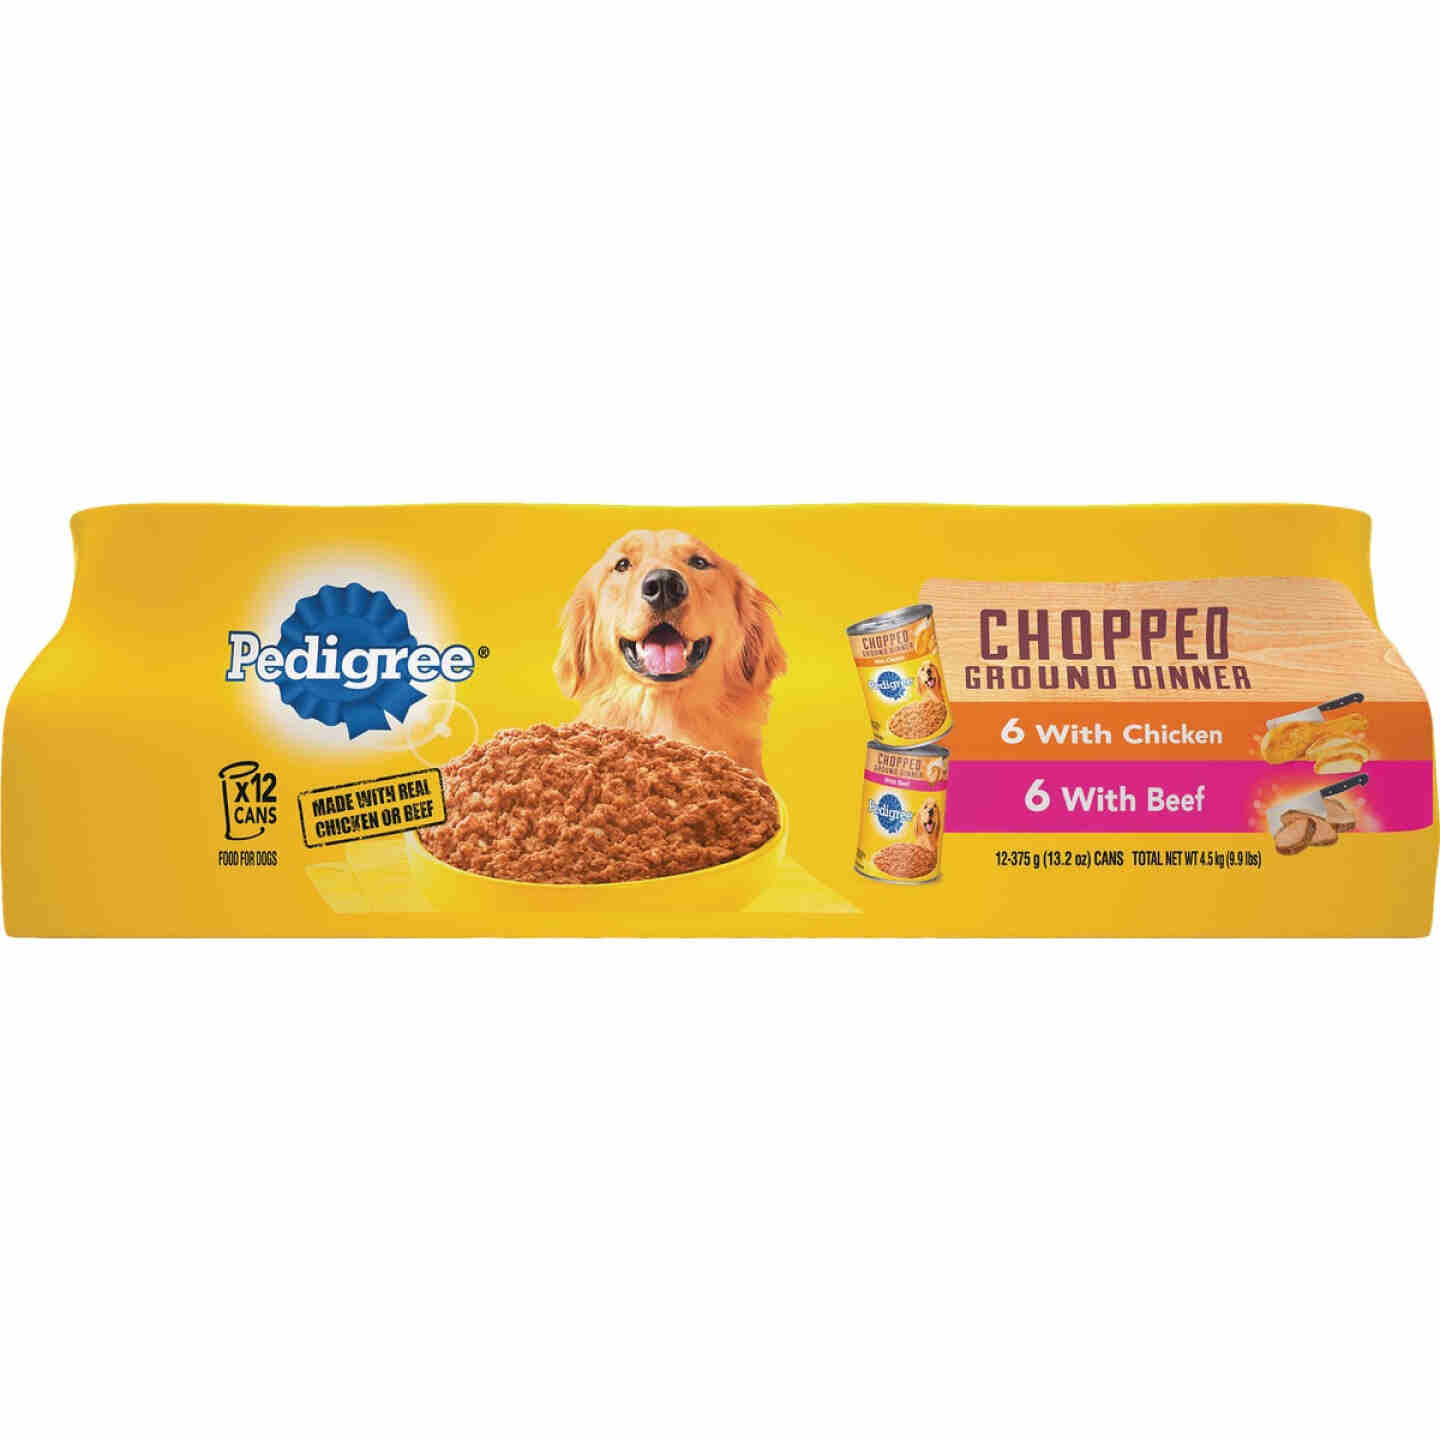 Pedigree Traditional Chopped Ground Dinner Chicken/Beef Variety Wet Dog Food (12-Pack) Image 1